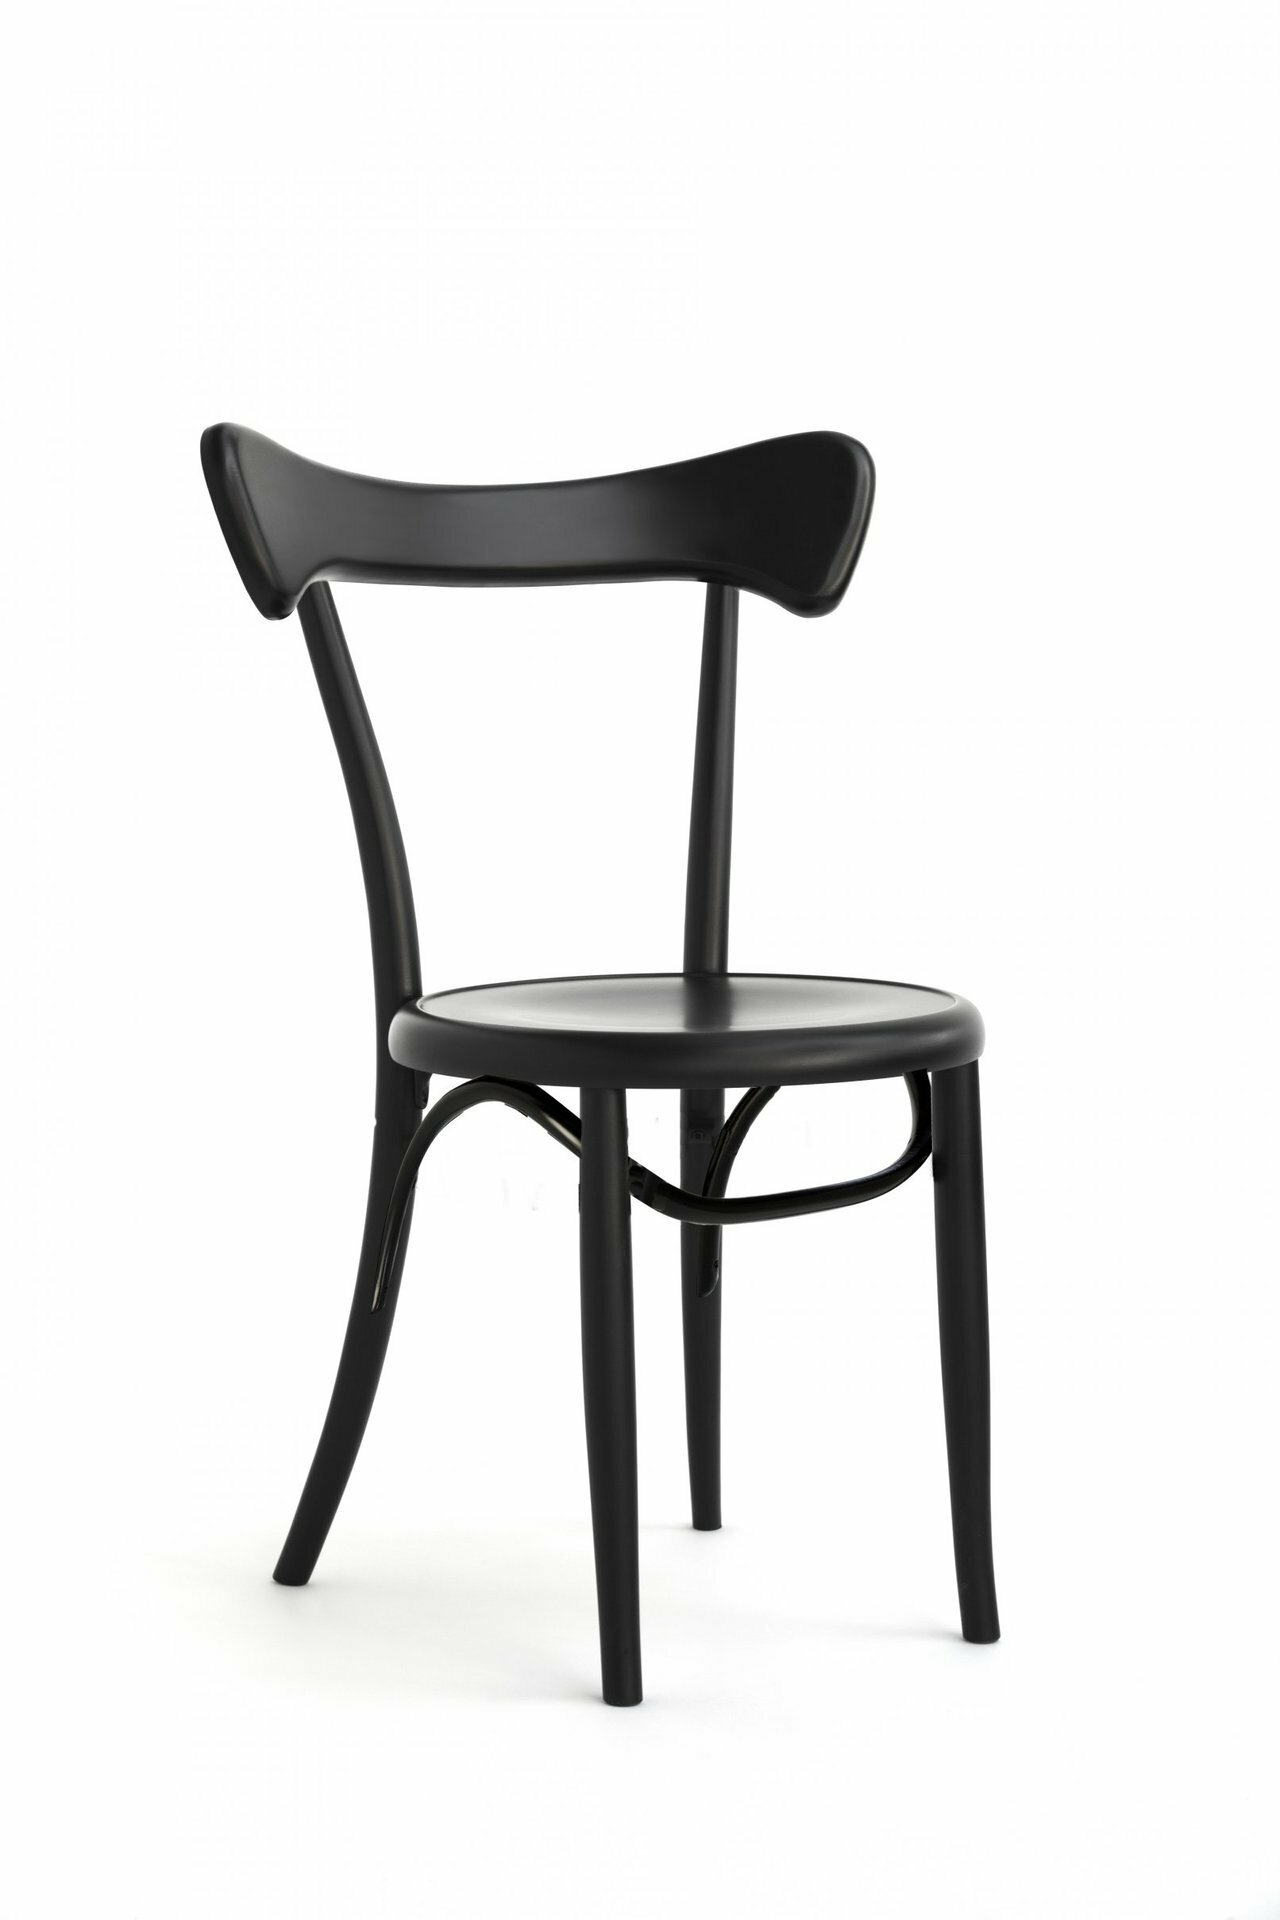 Cafe tables and chairs png - Chairs Armchairs